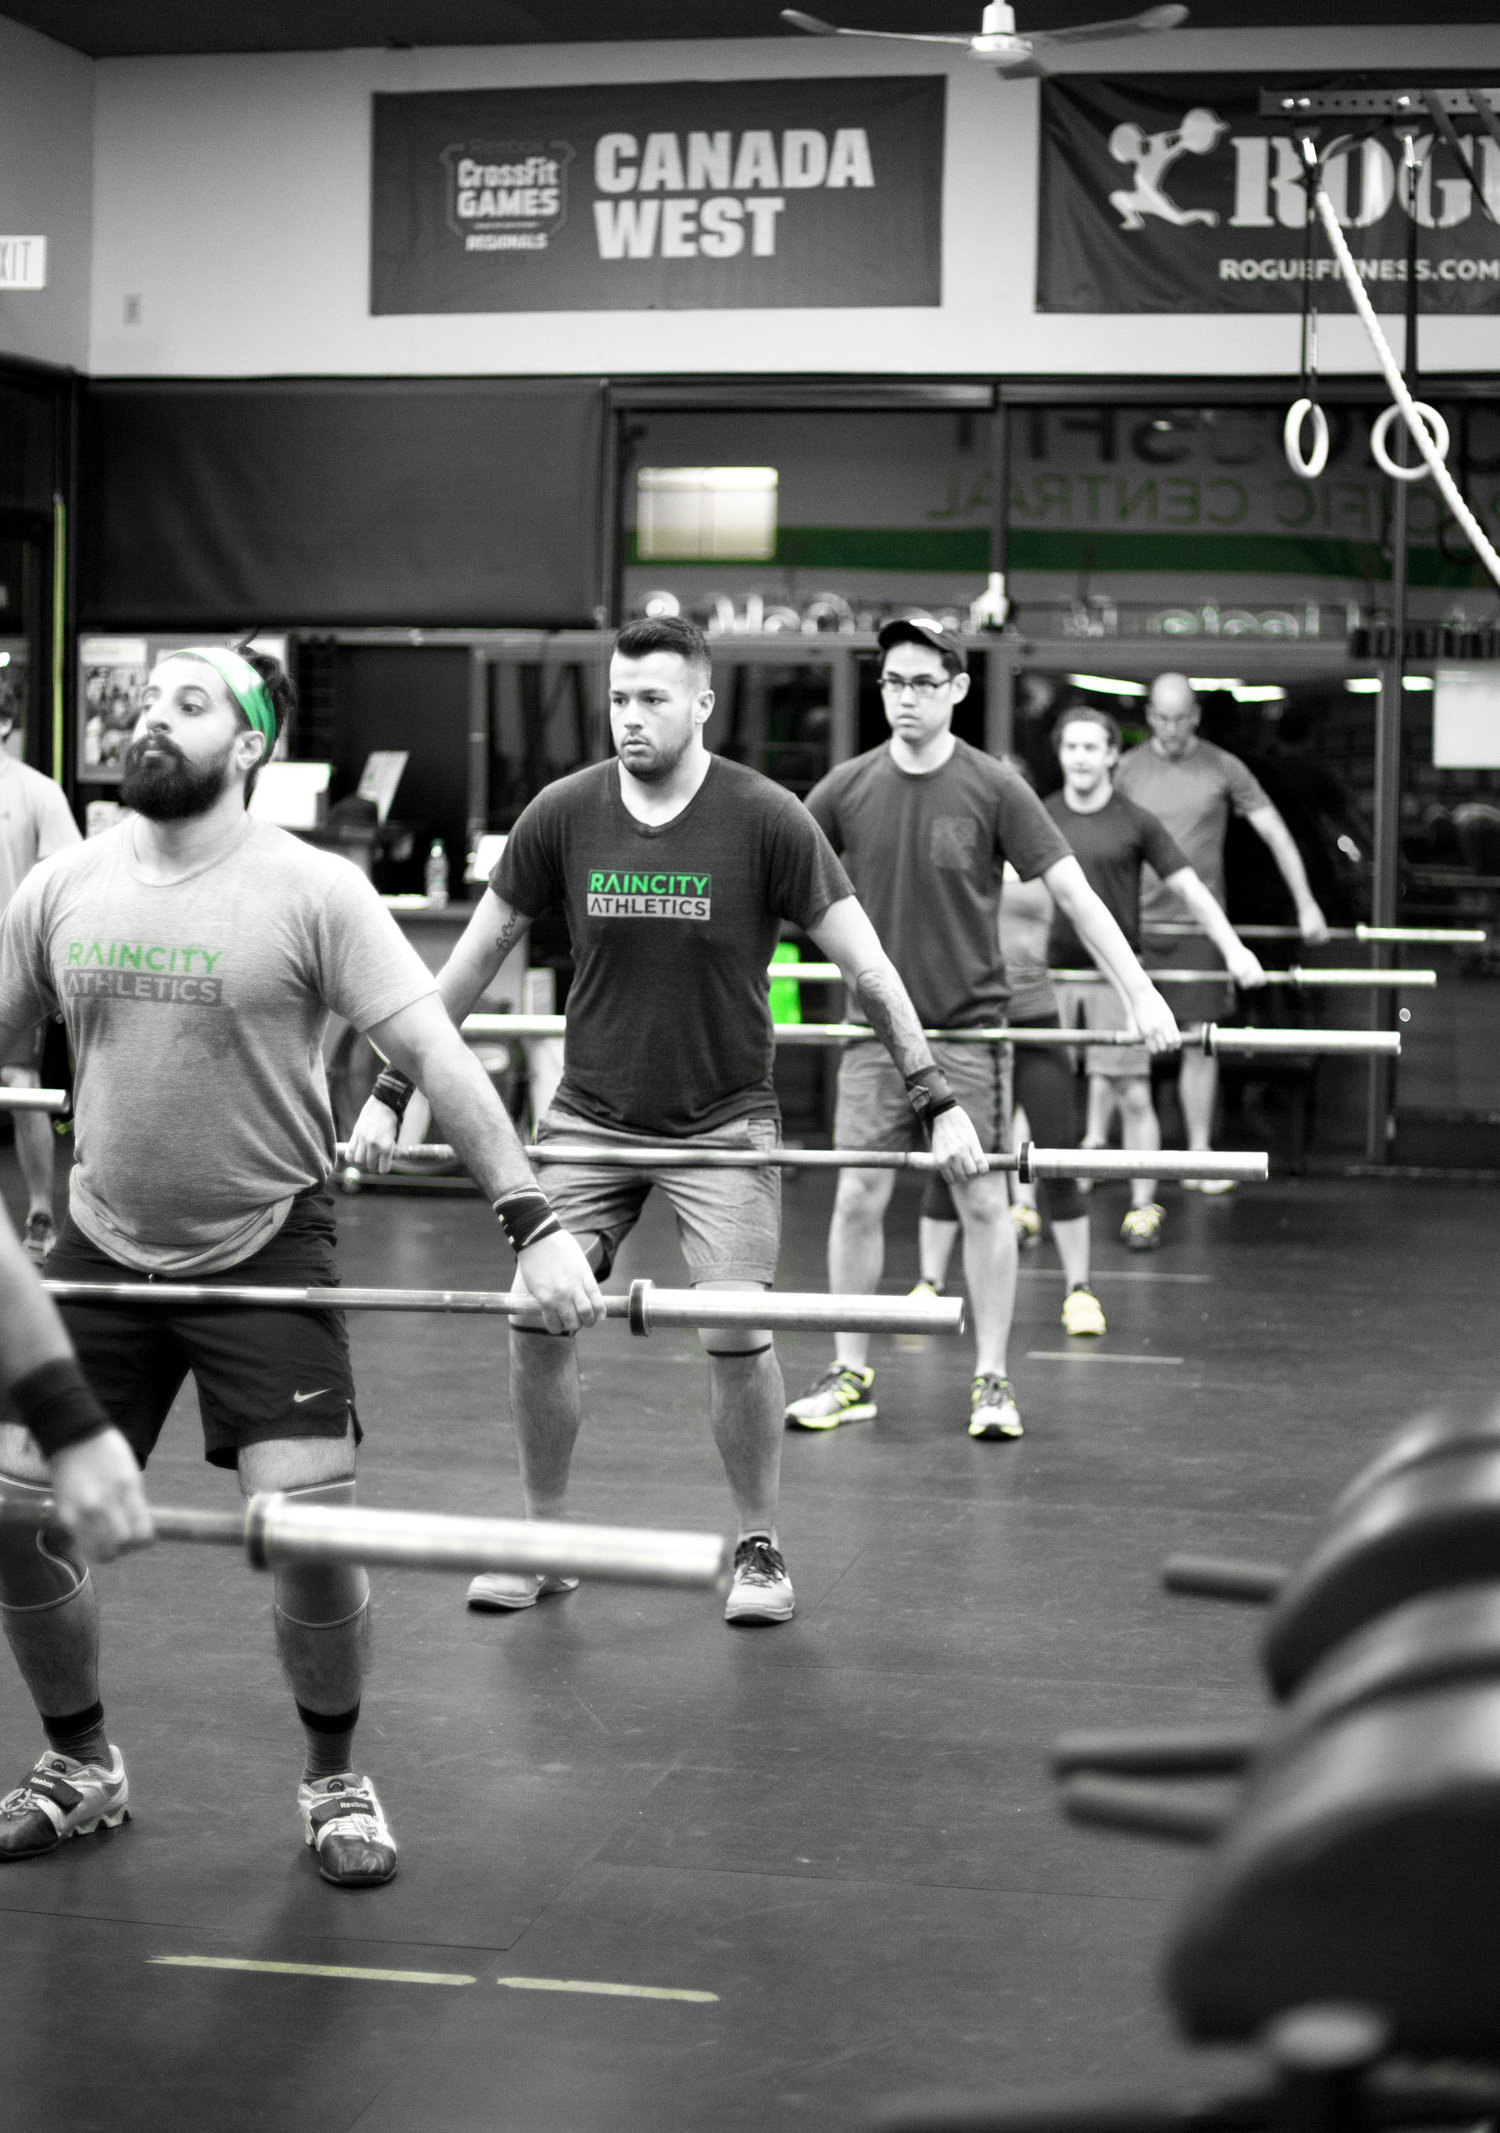 Raincity Athletics and CrossFit Pacific Central in Vancouver, BC